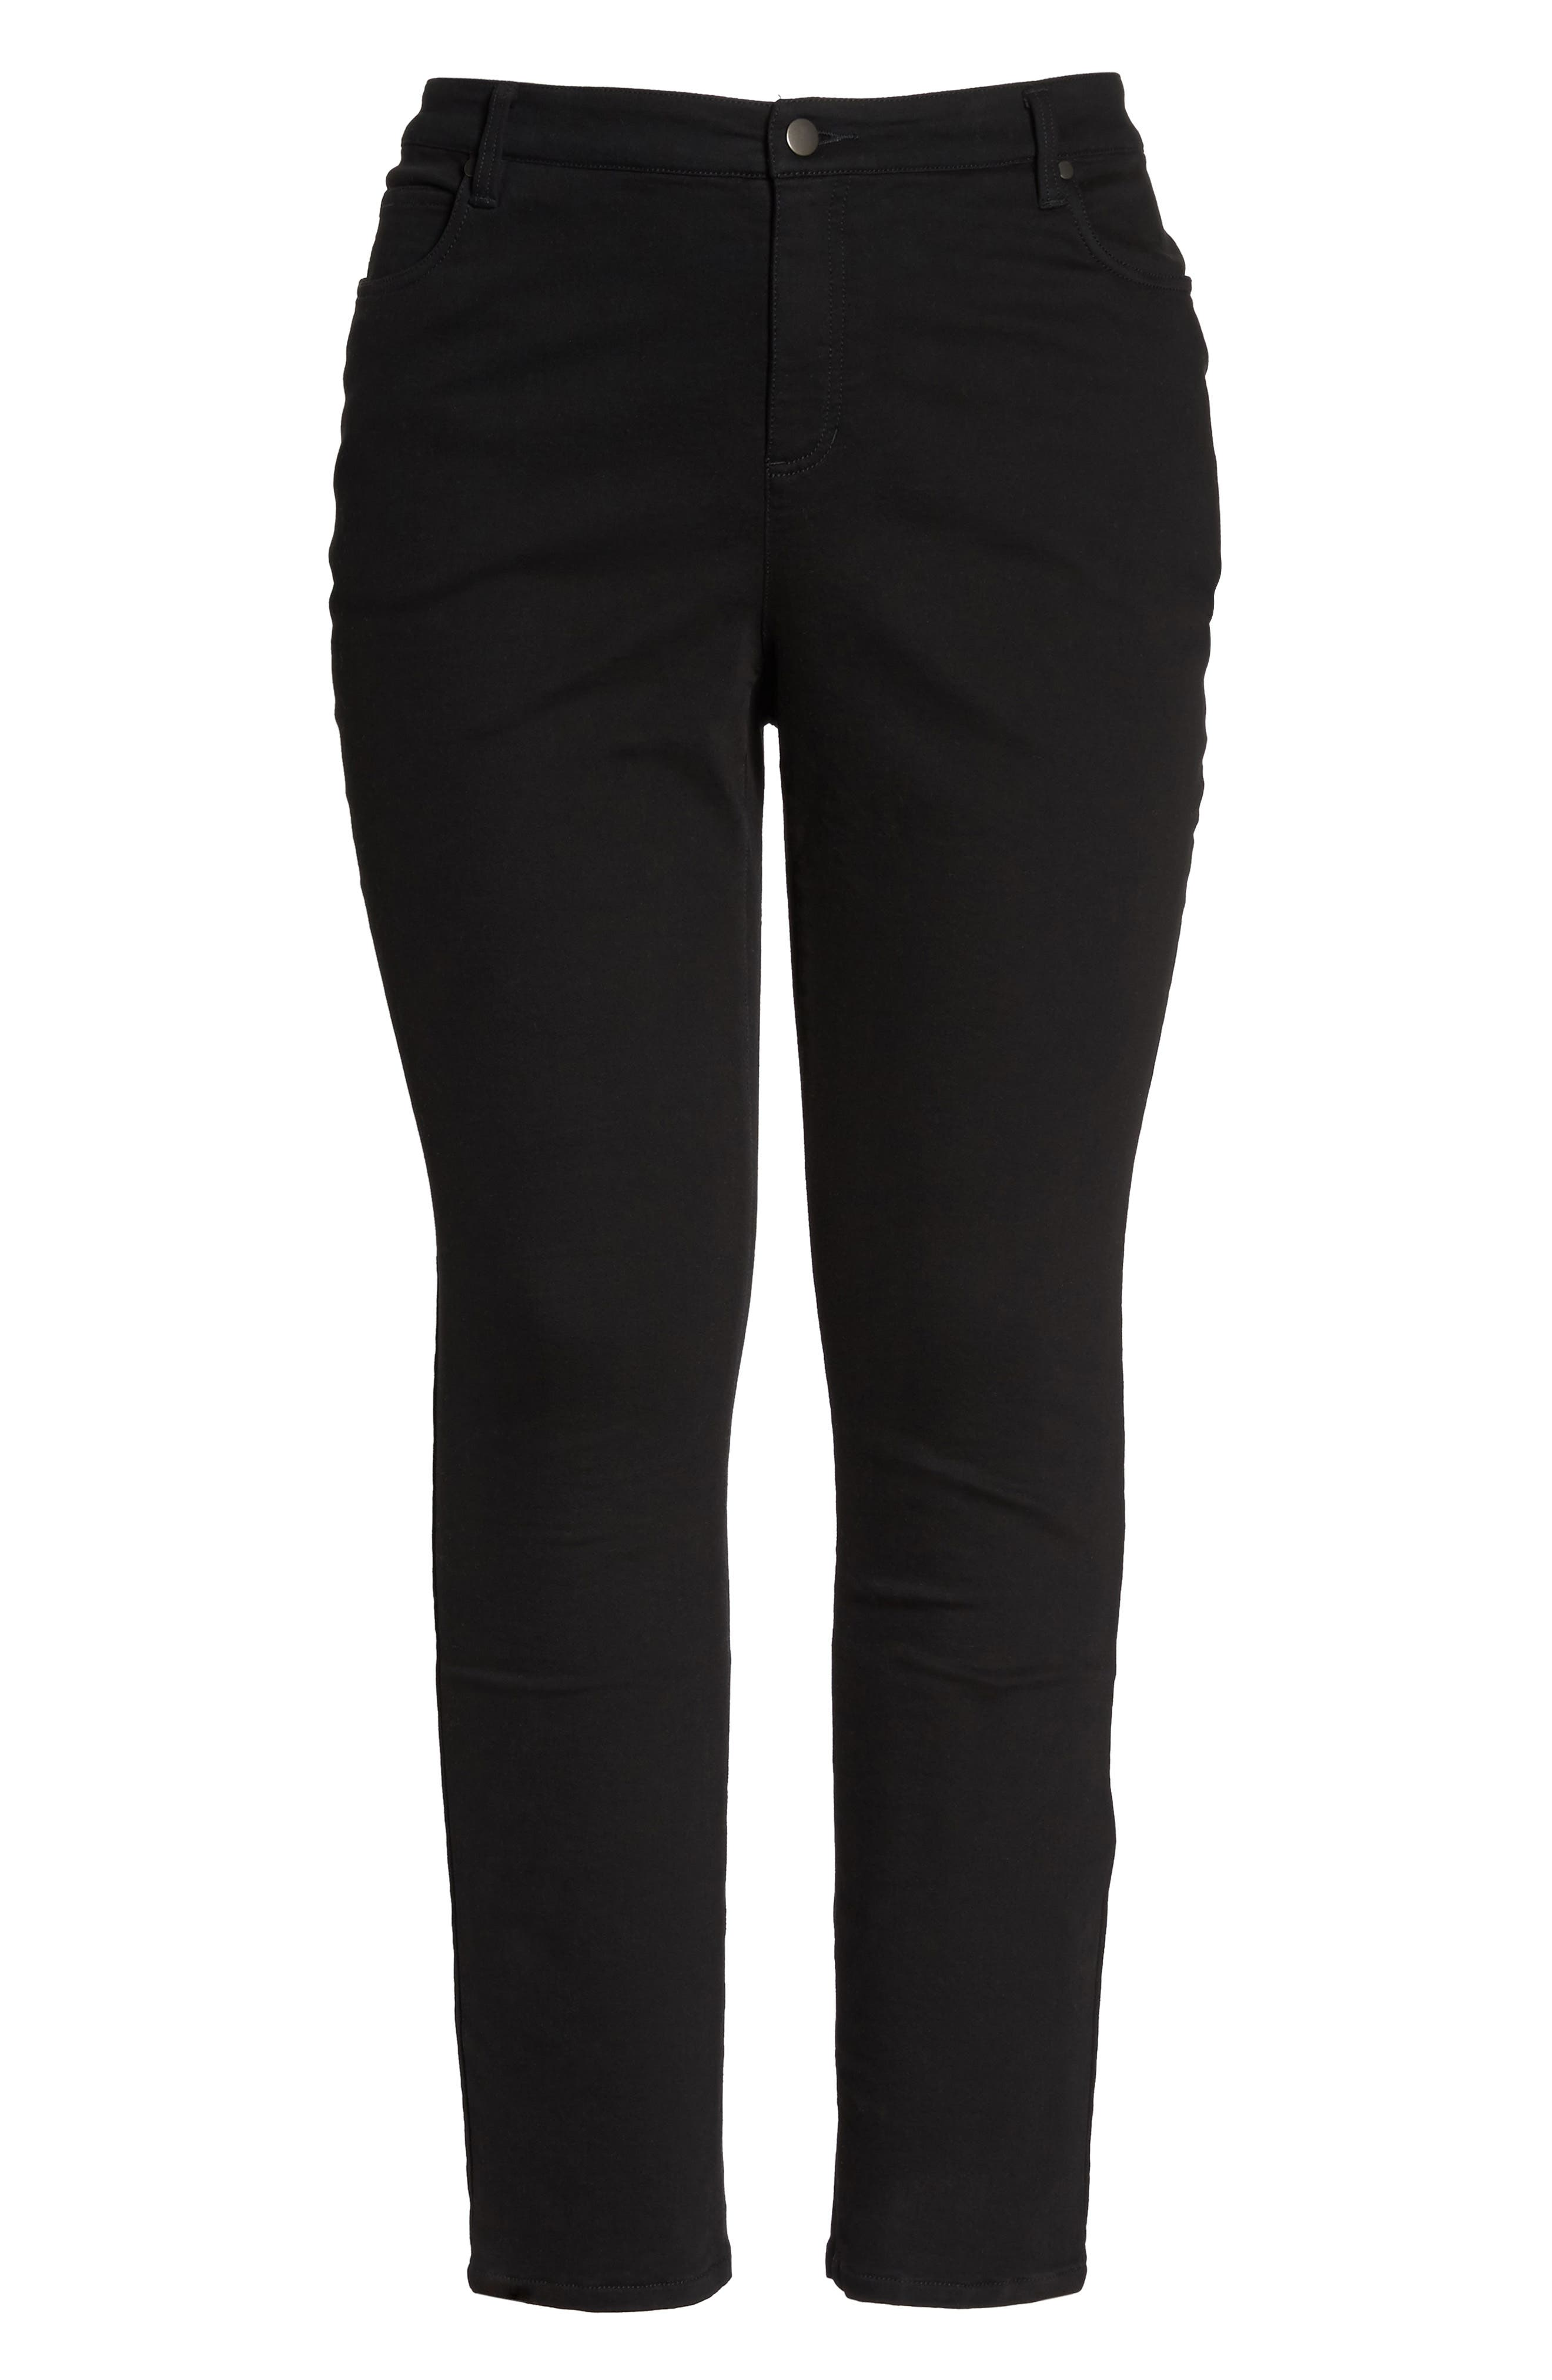 Organic Cotton Skinny Stretch Jeans,                             Alternate thumbnail 6, color,                             001